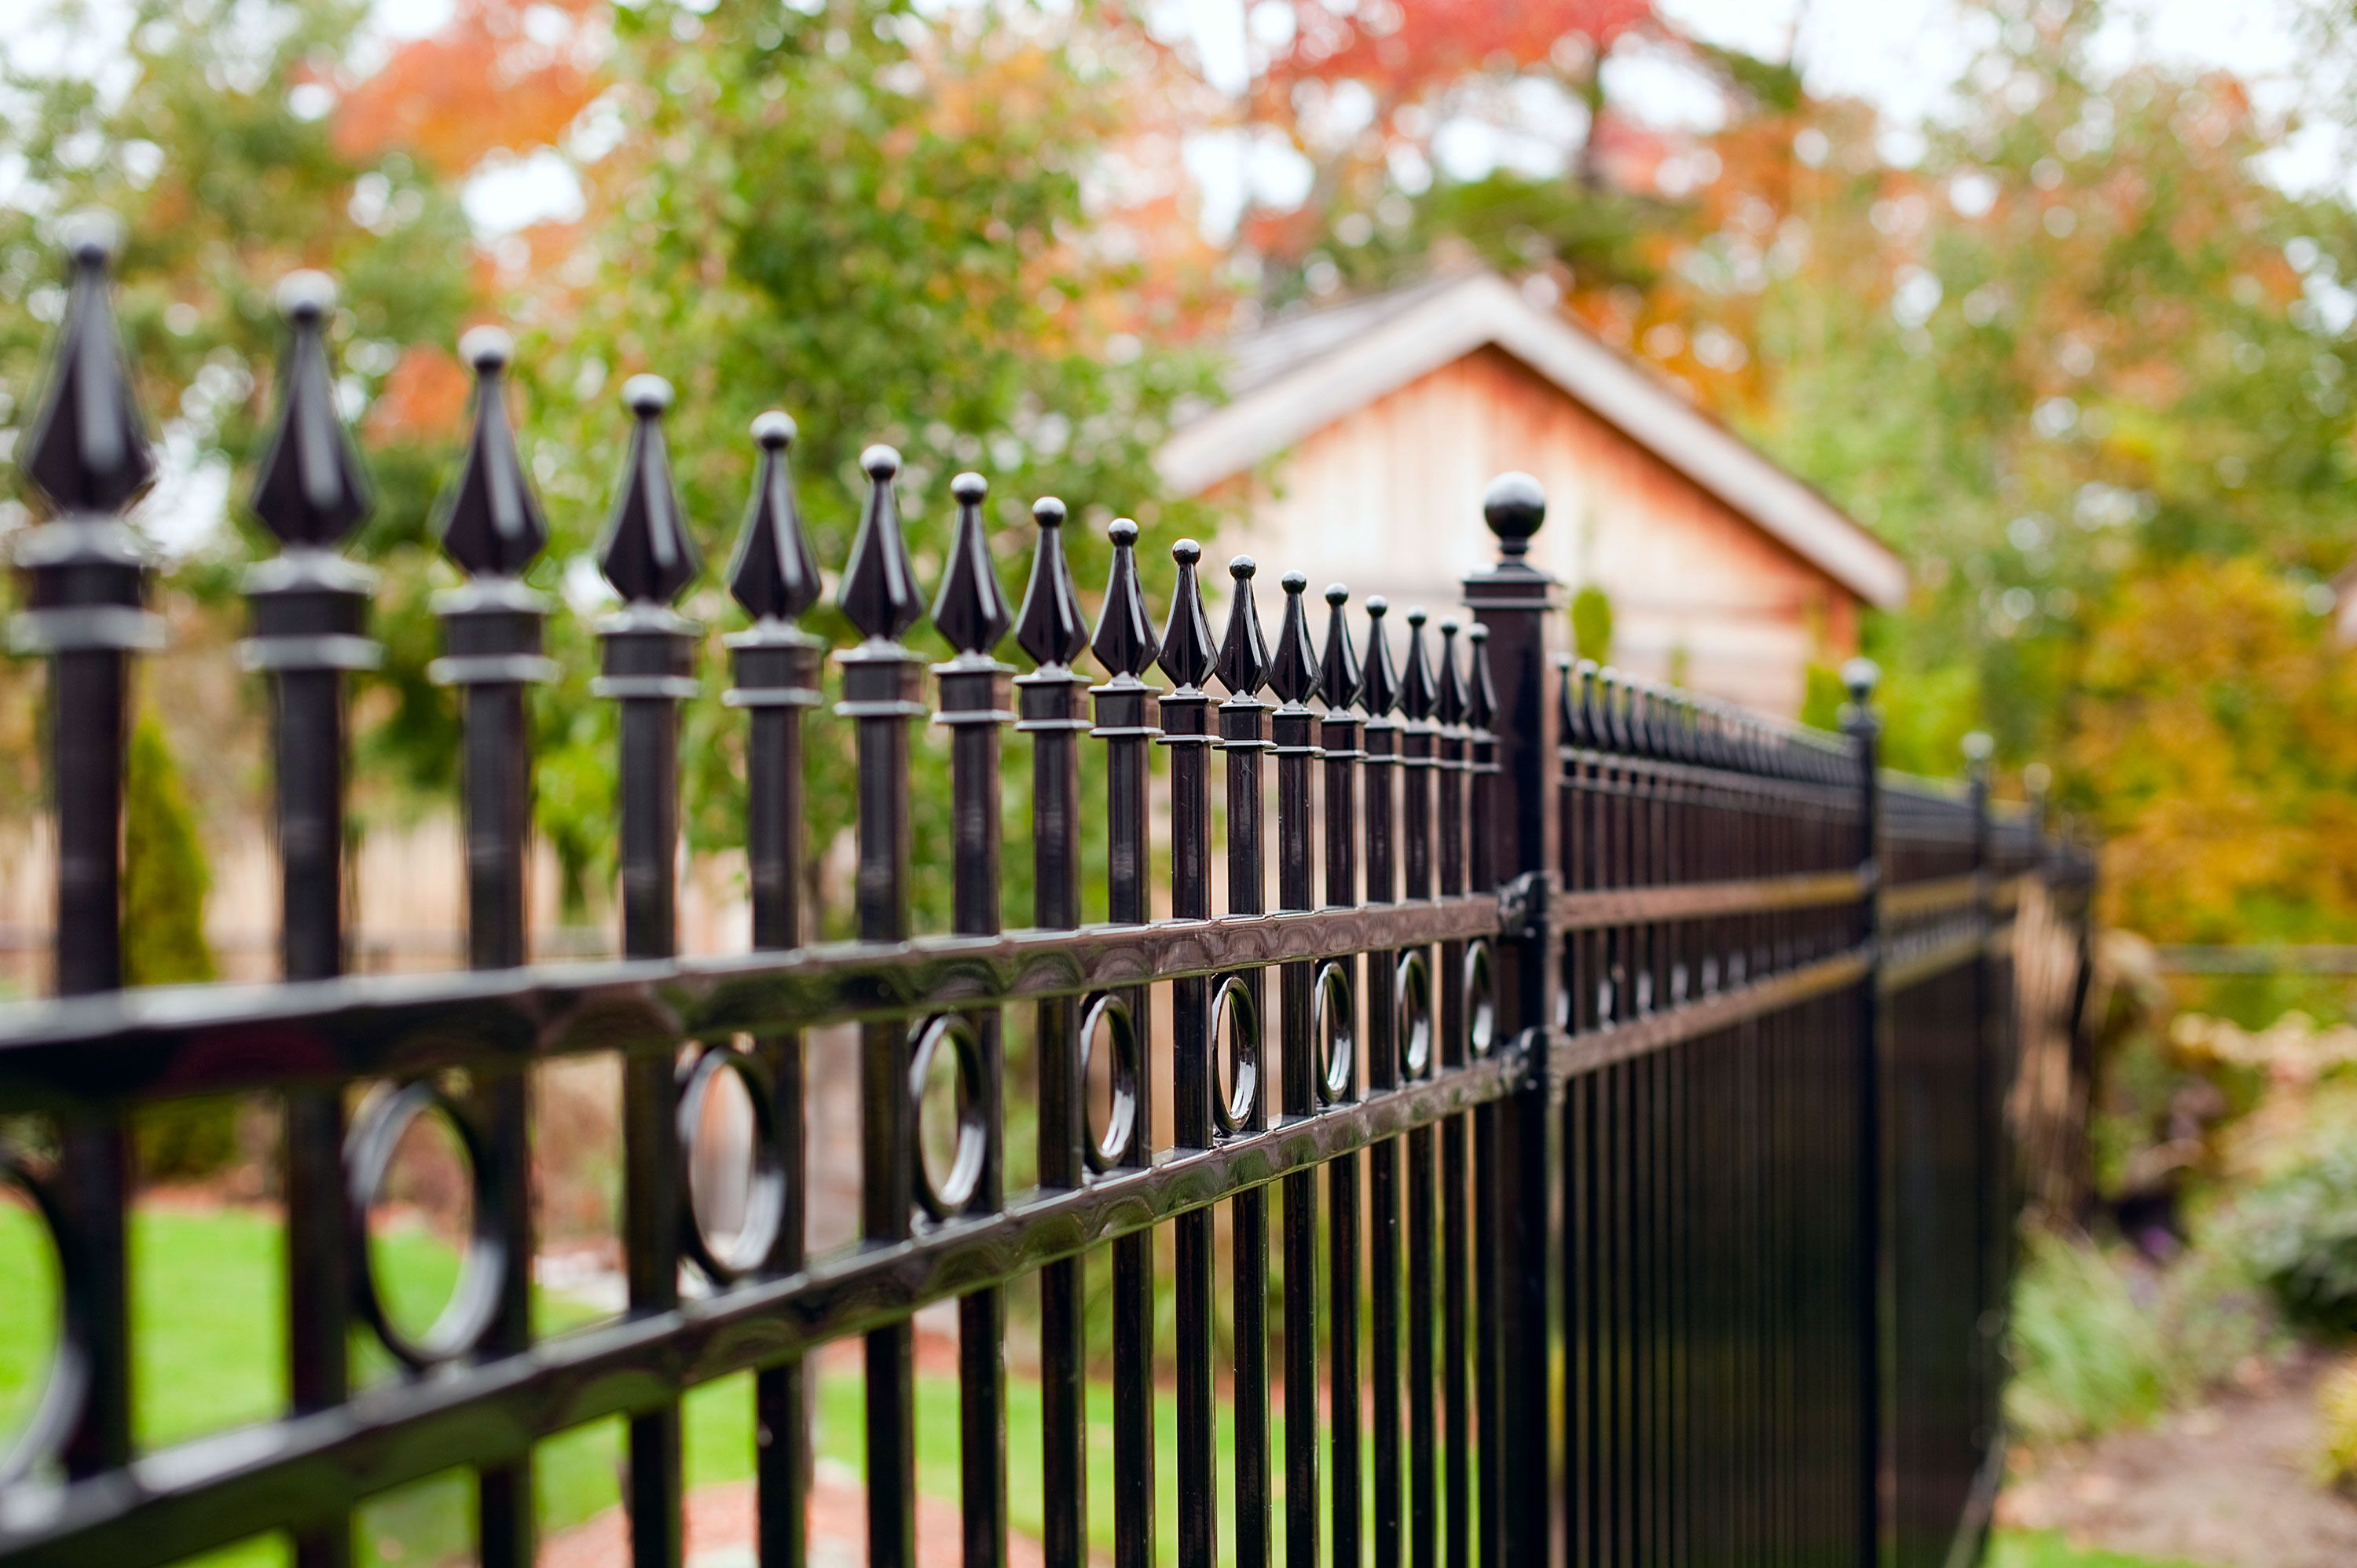 All About Metal Fences In 2020 Iron Fence Metal Fence Modern Fence